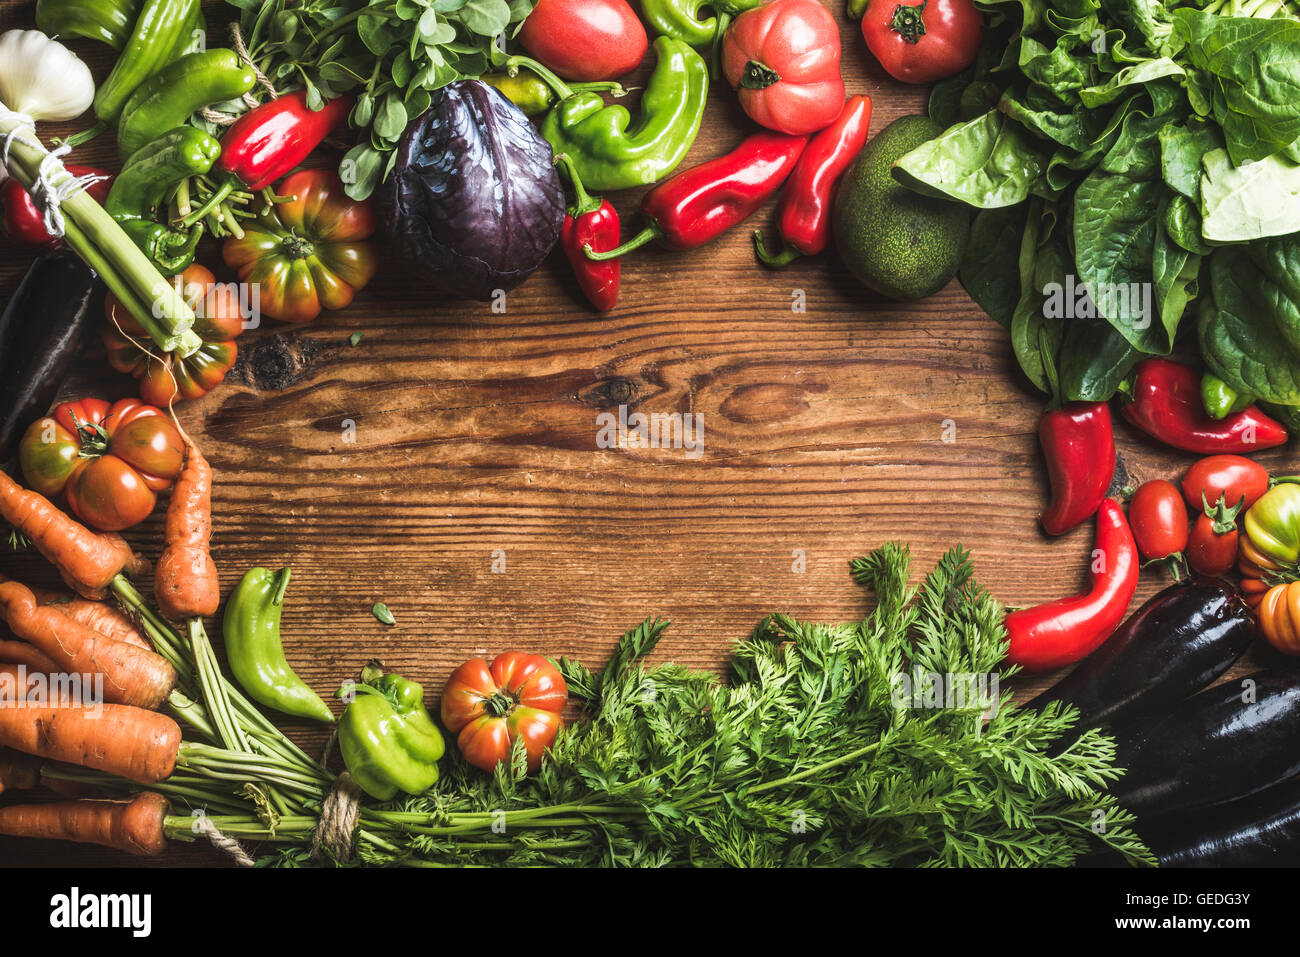 Fresh raw vegetable ingredients for healthy cooking or salad making over rustic wood background, top view, copy - Stock Image